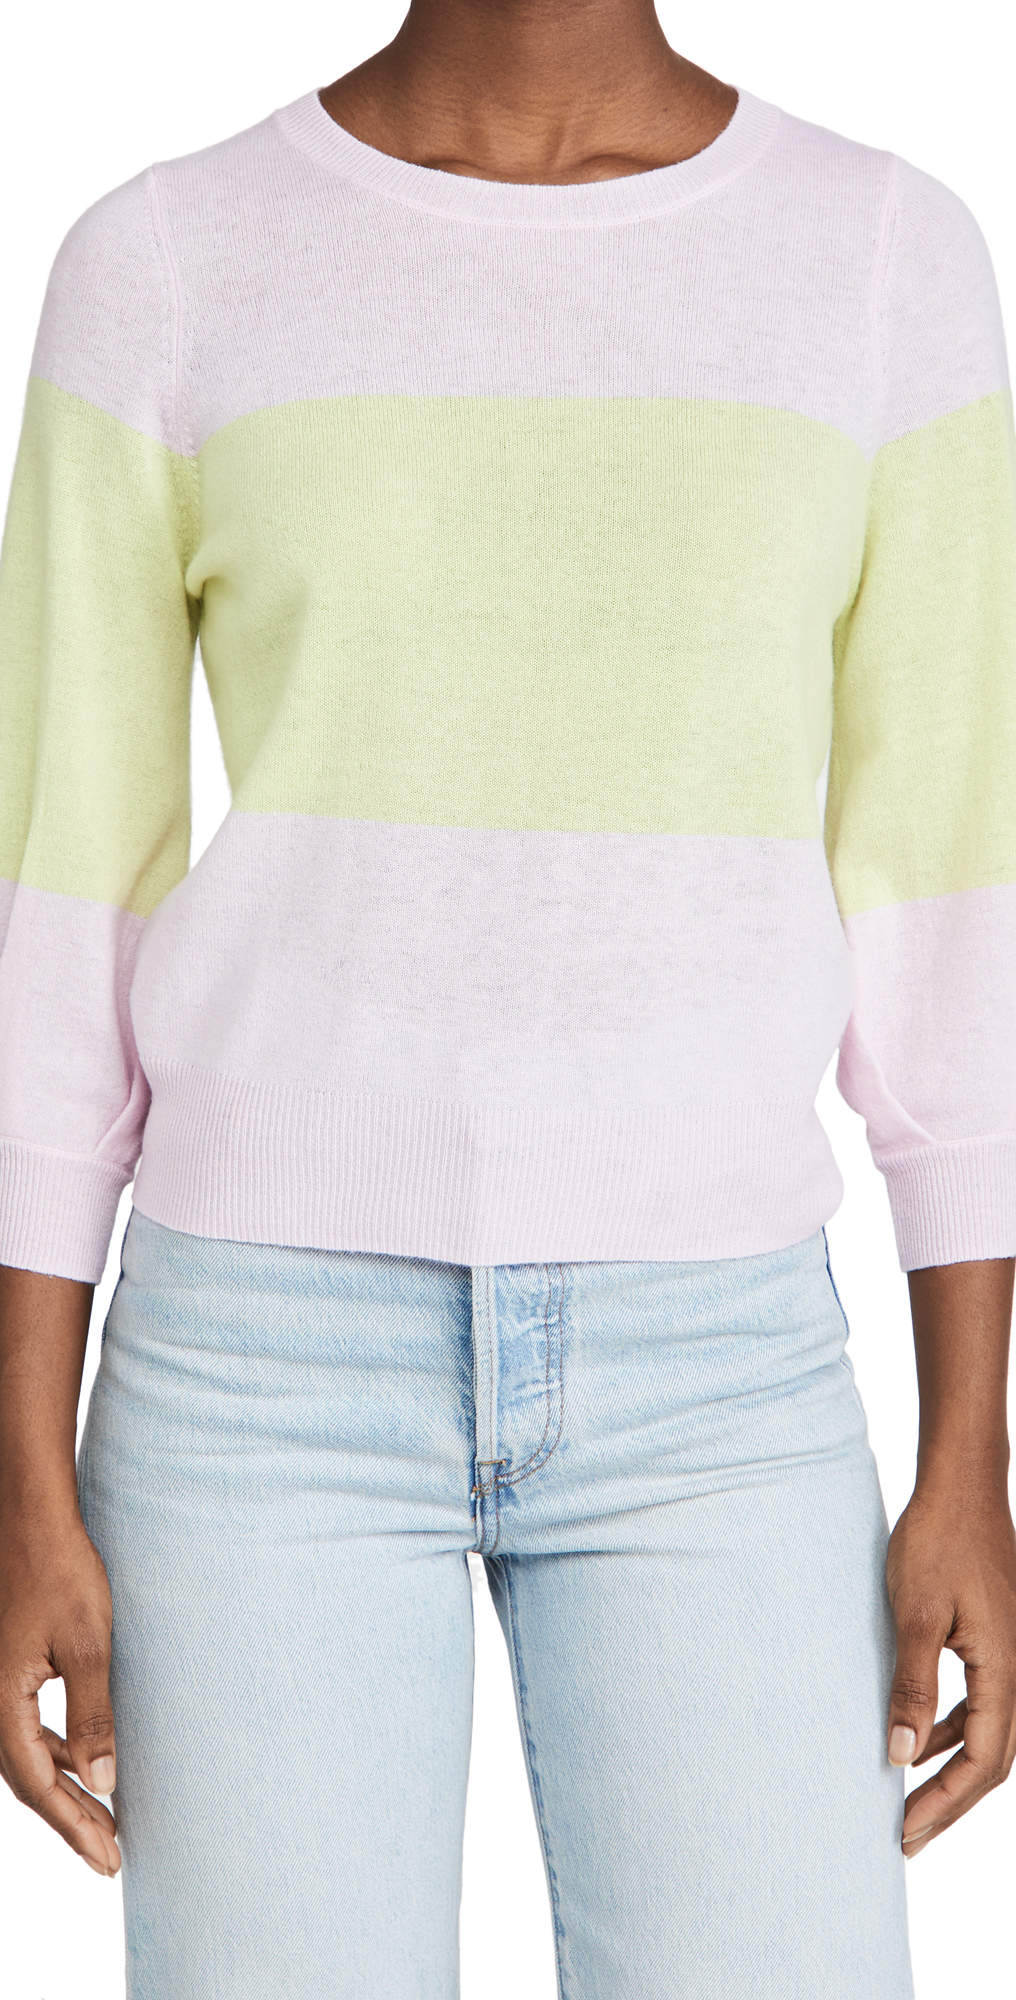 Autumn Cashmere Colorblock Puff Sleeve Cashmere Sweater